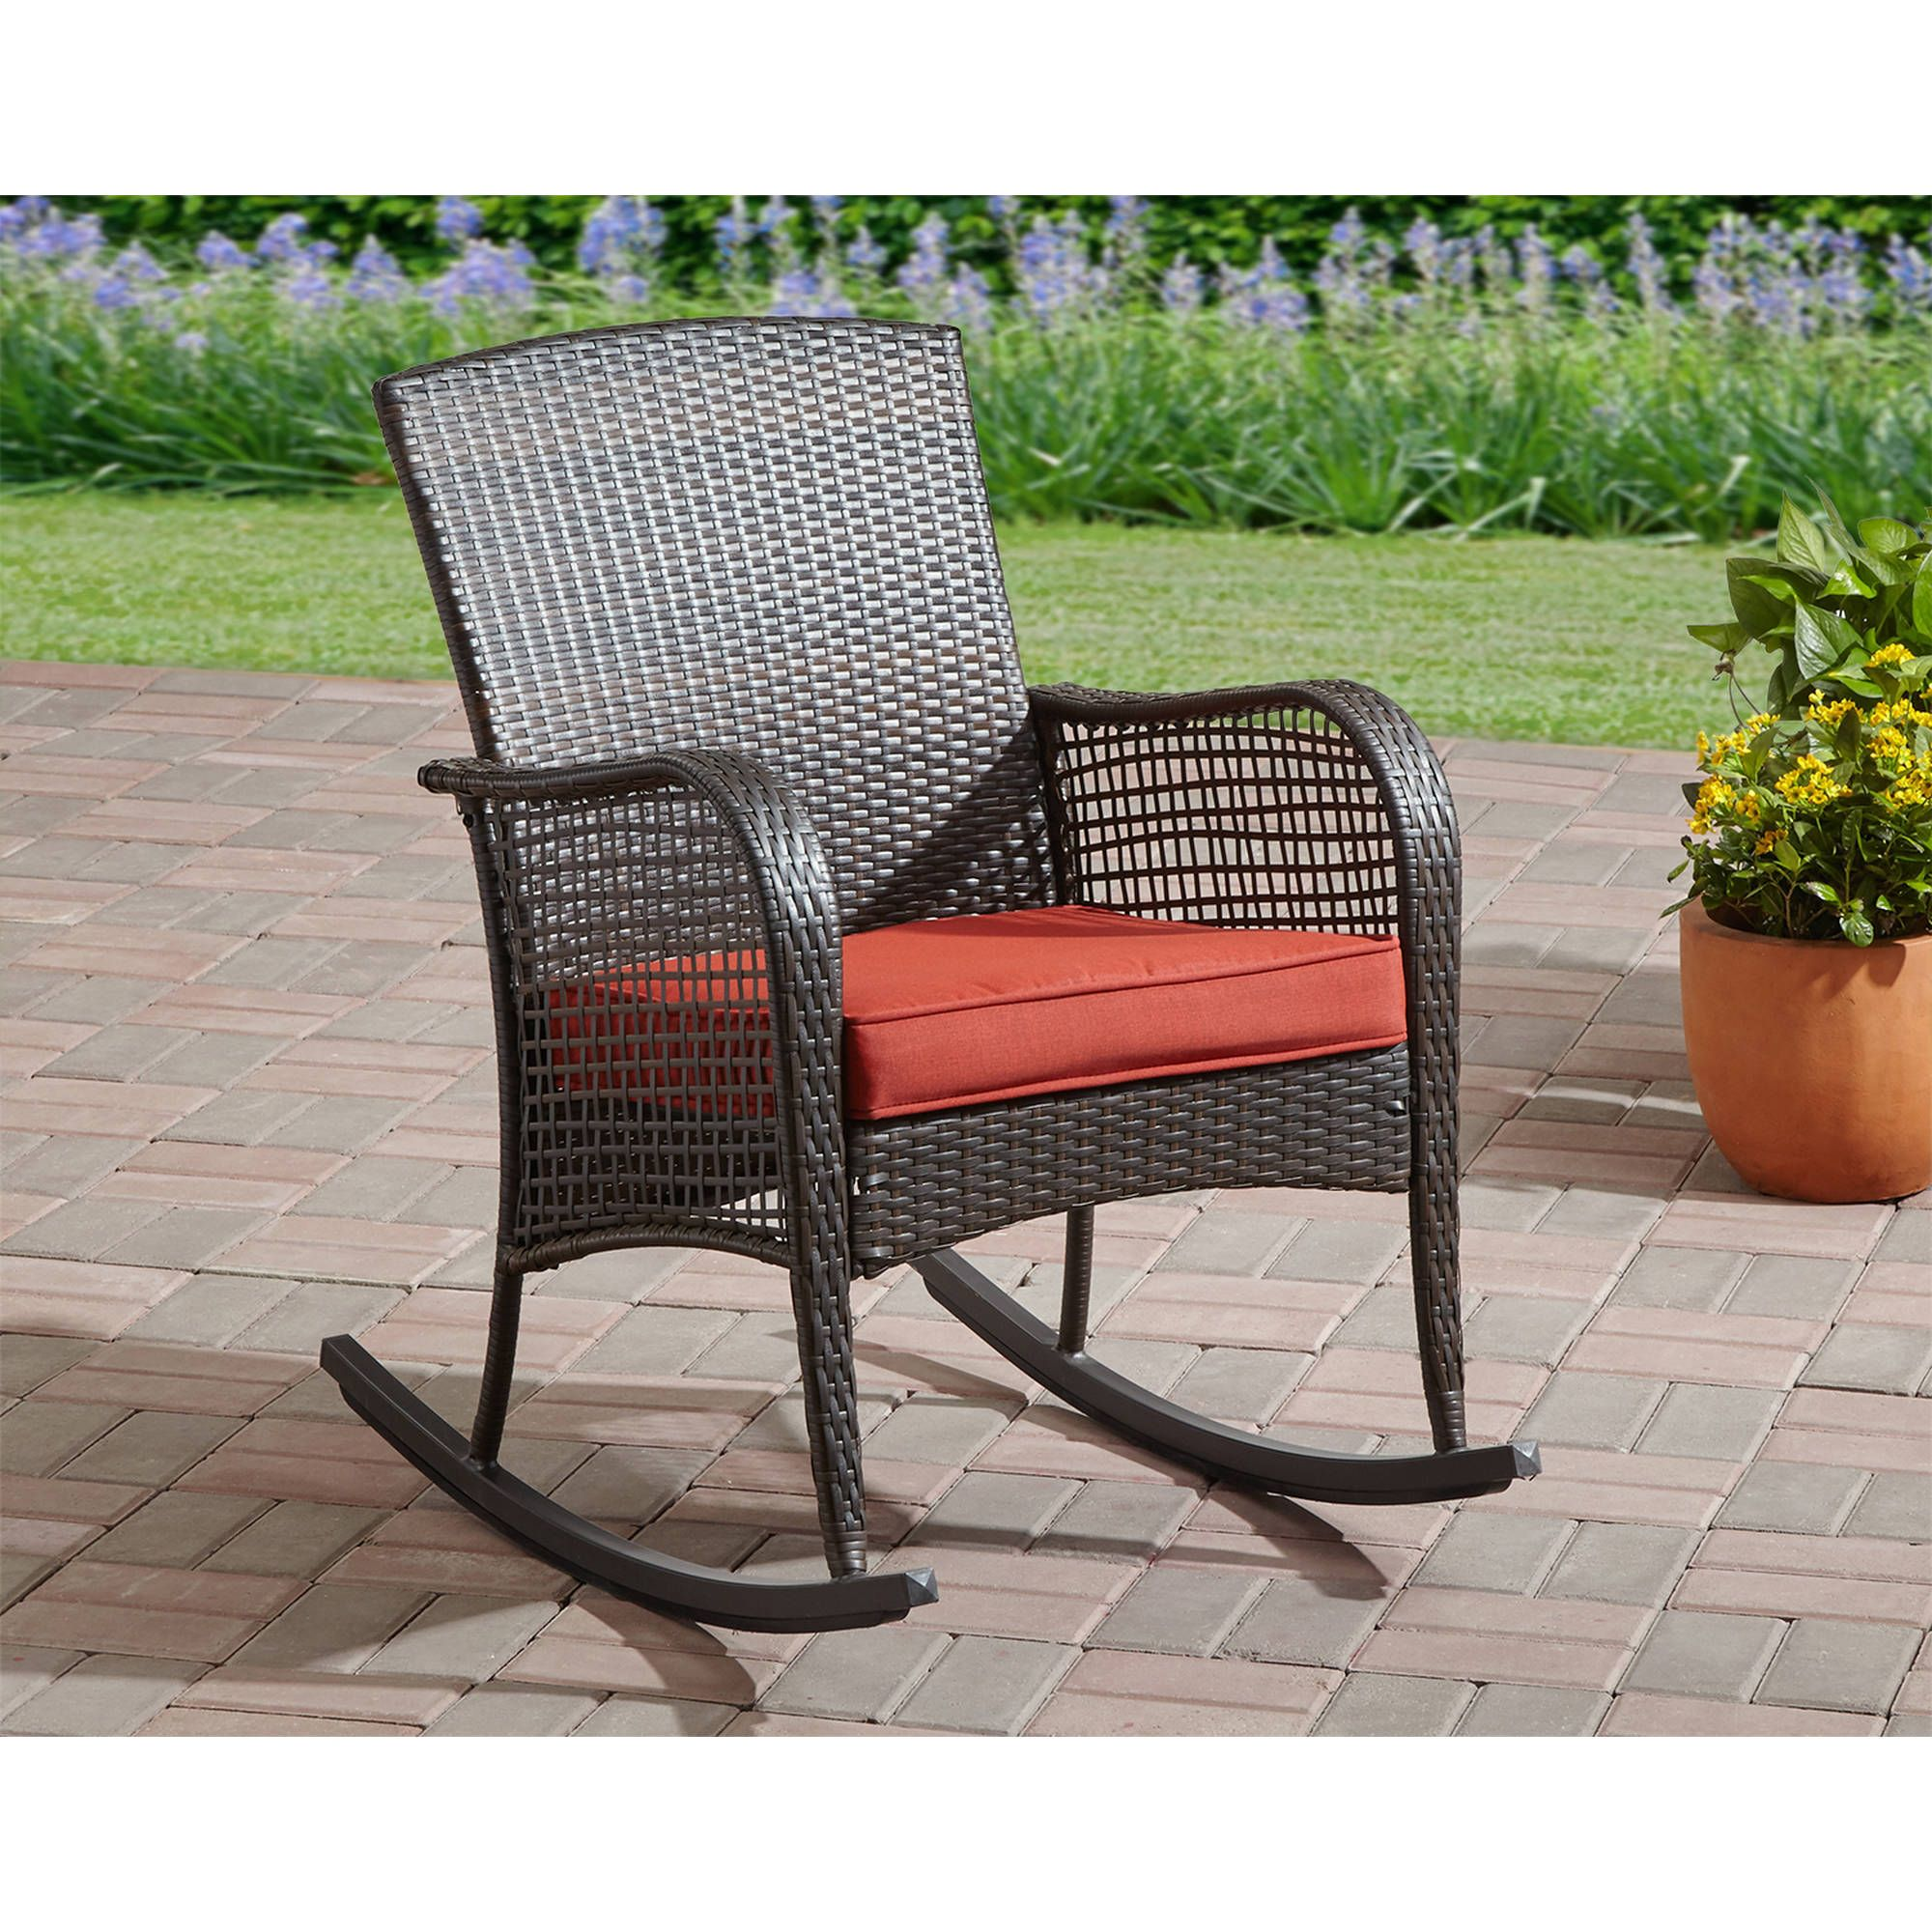 Install Outdoor Patio Chairs For Comfortable Sitting Decorifusta Outdoor Wicker Rocking Chairs Wicker Rocking Chair Patio Chairs